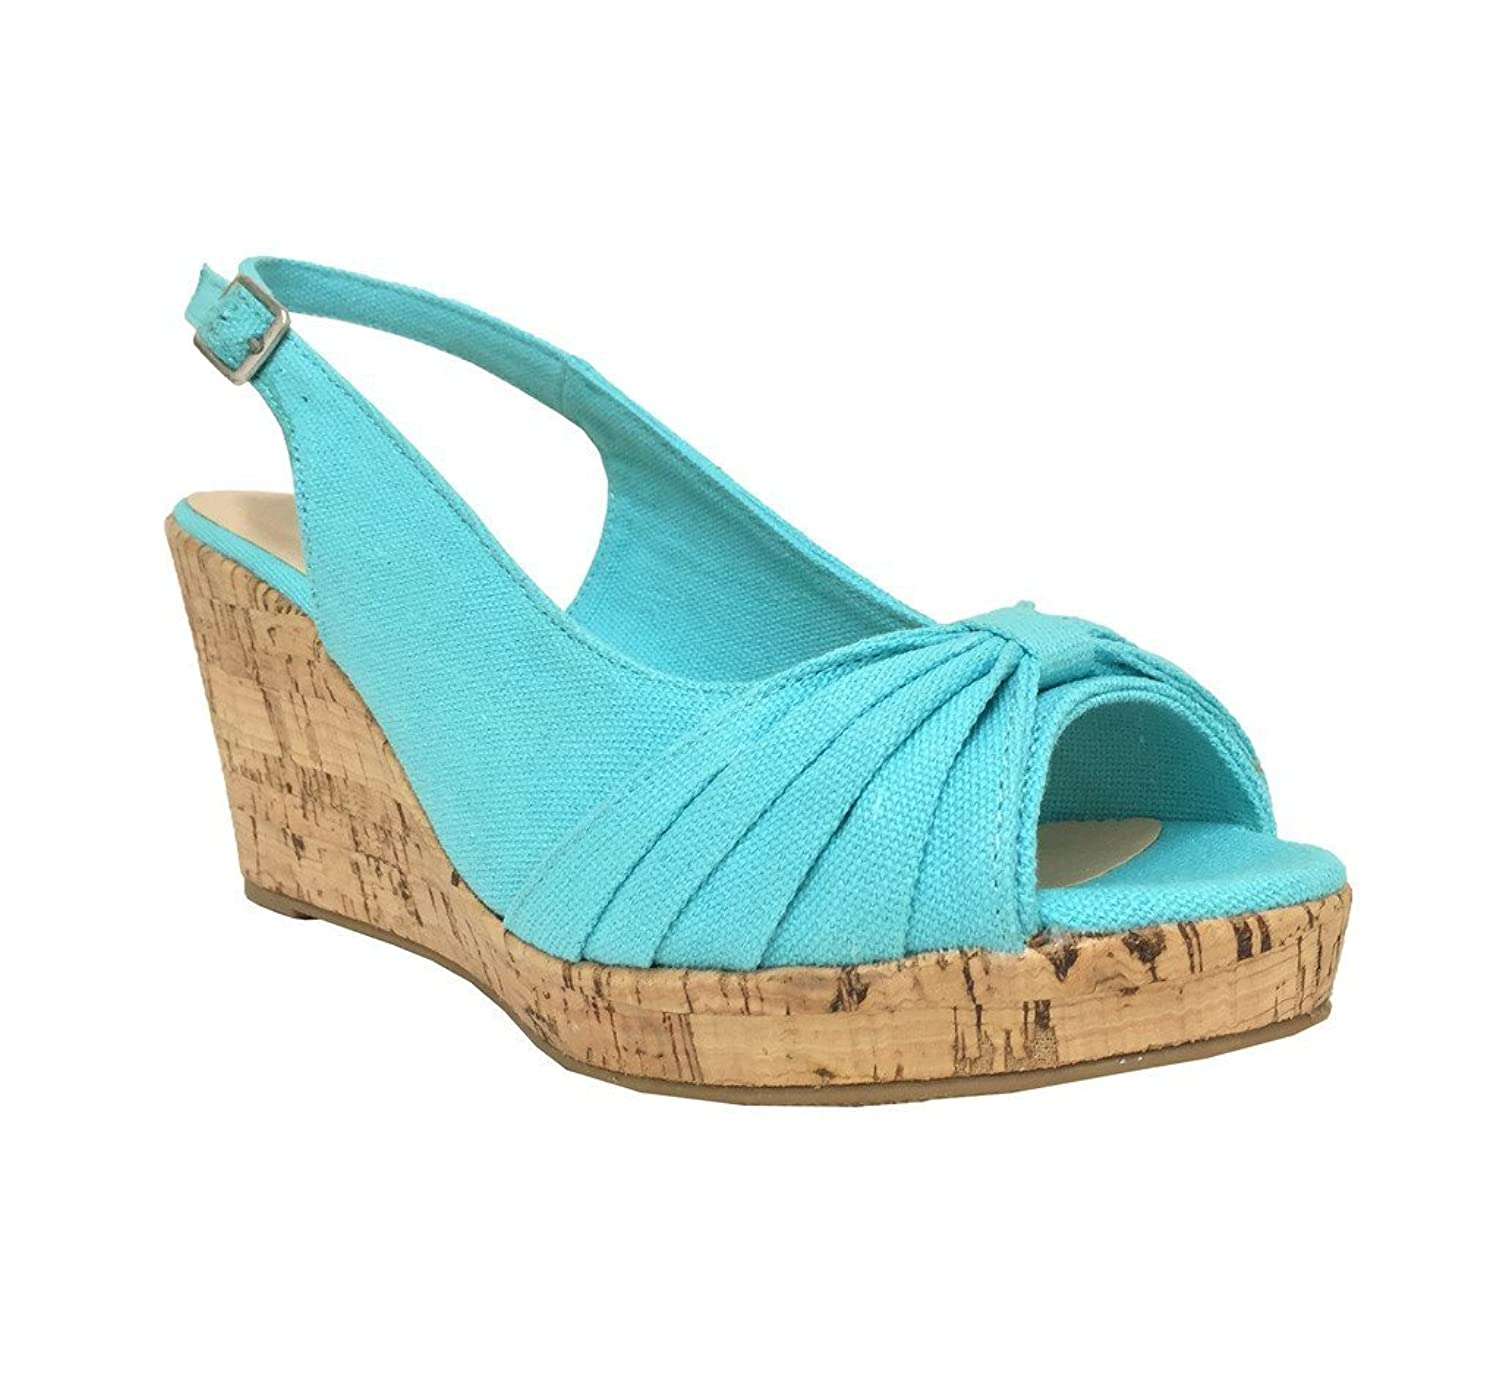 City Classified Women's Ralph Peep Toe Platform Cork Wedge Sling-Back Sandal in Blue Cotton B00BI37FQA 6 B(M) US